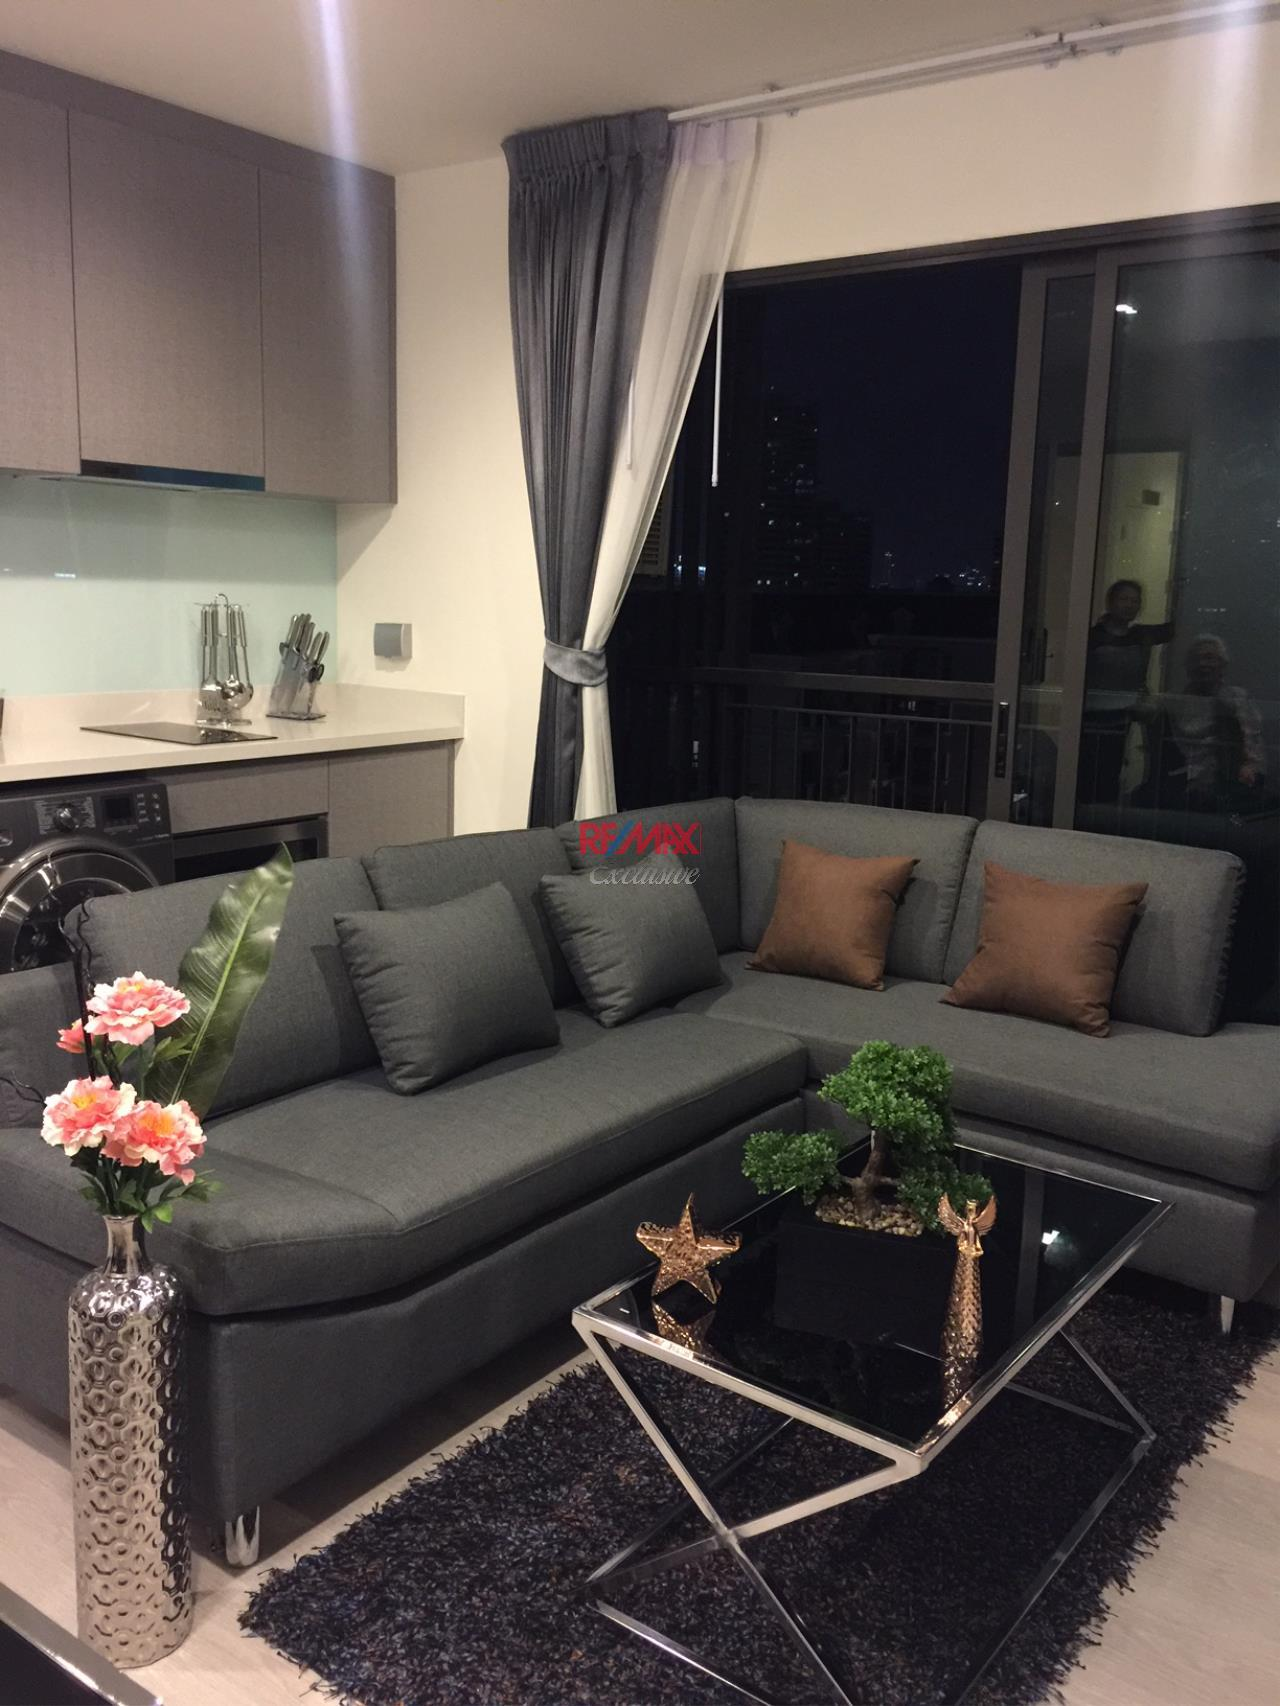 RE/MAX Exclusive Agency's Rhythm Sukhumvit 36-38 1 Bedroom, 42 Sqm., For Rent 35,000 THB!! 1